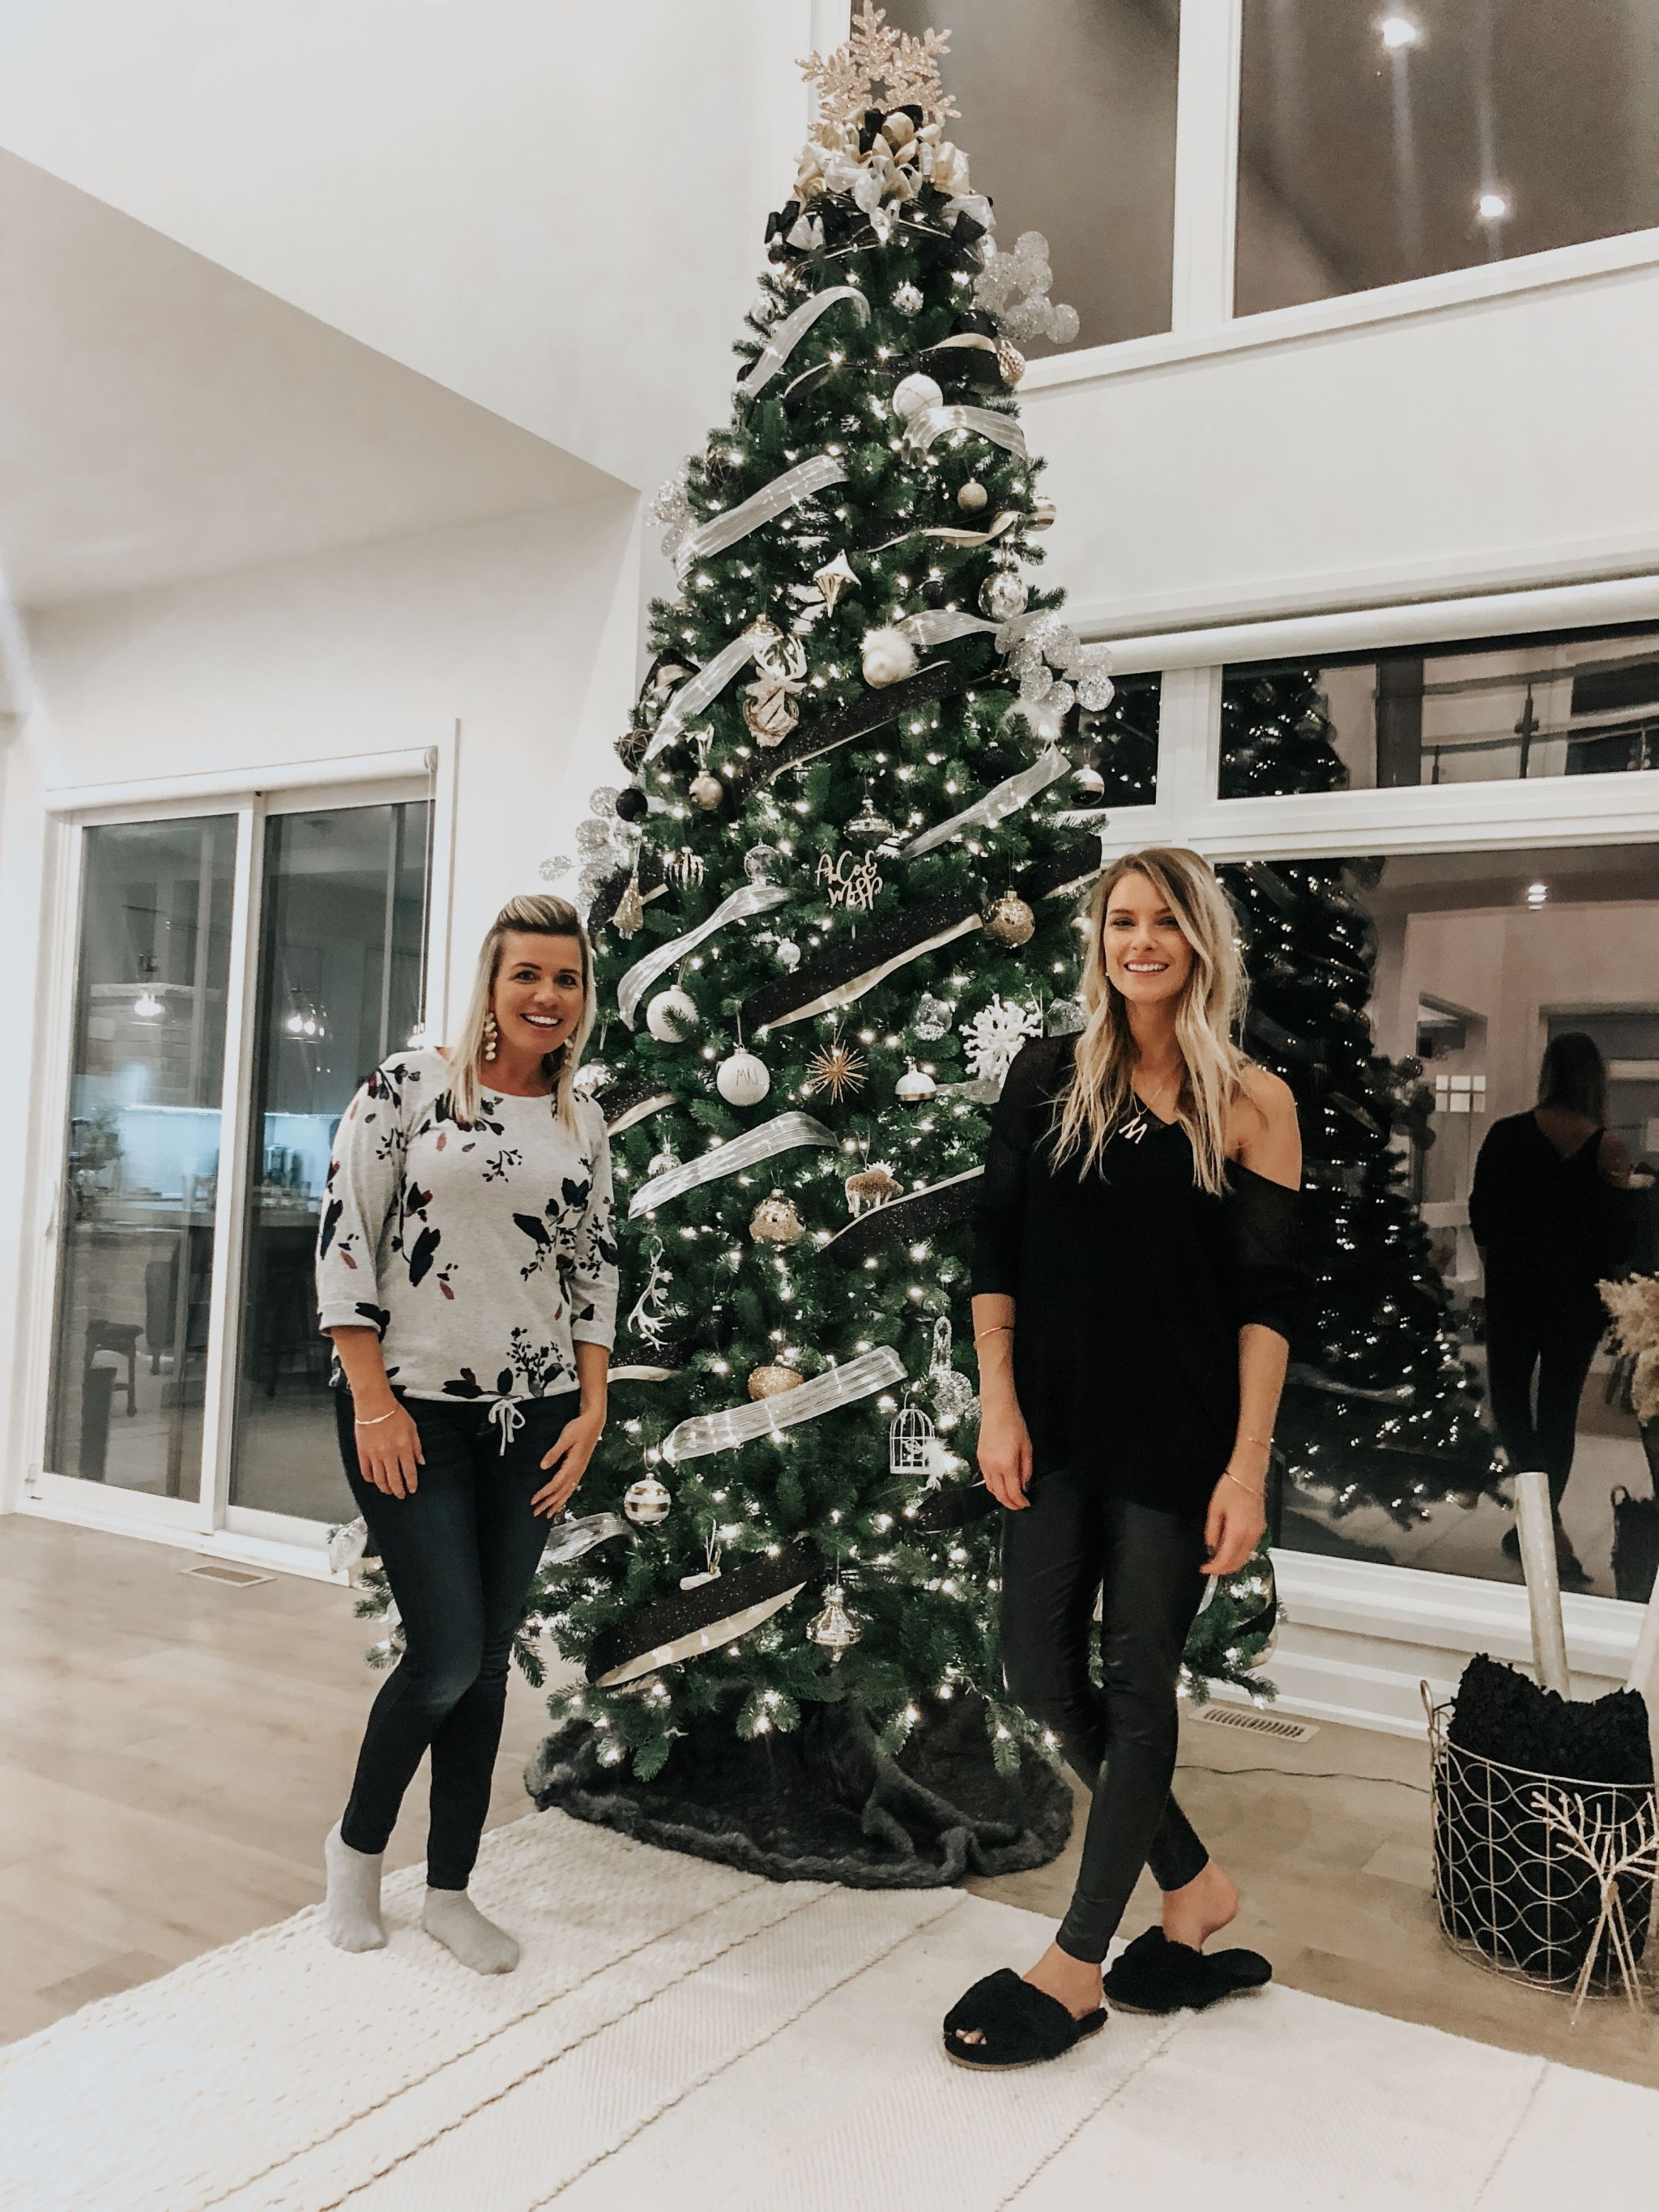 12 foot Christmas tree, life with aco, two girls and a Christmas tree